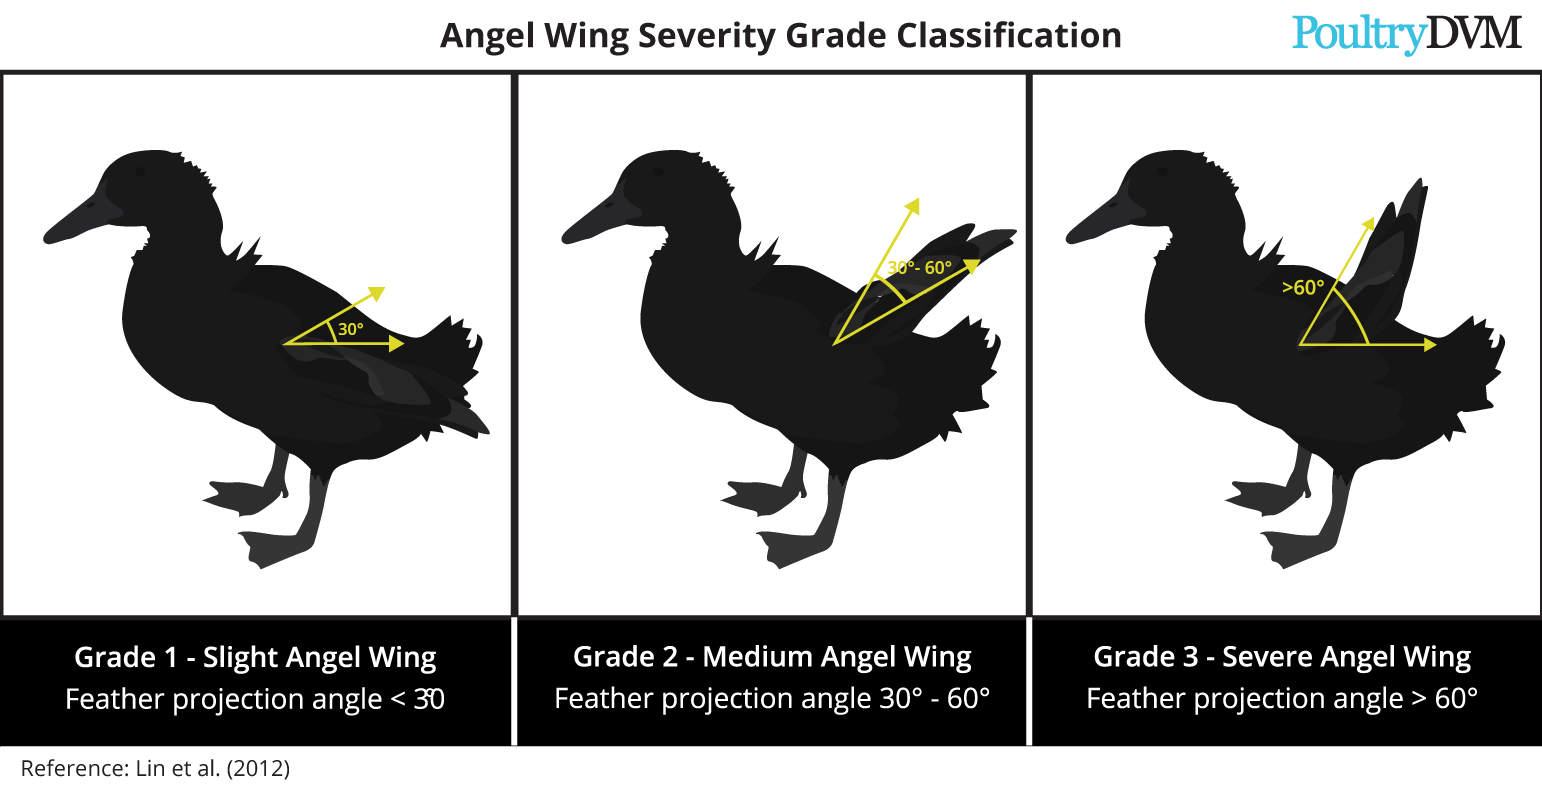 Angel wing severity in ducks